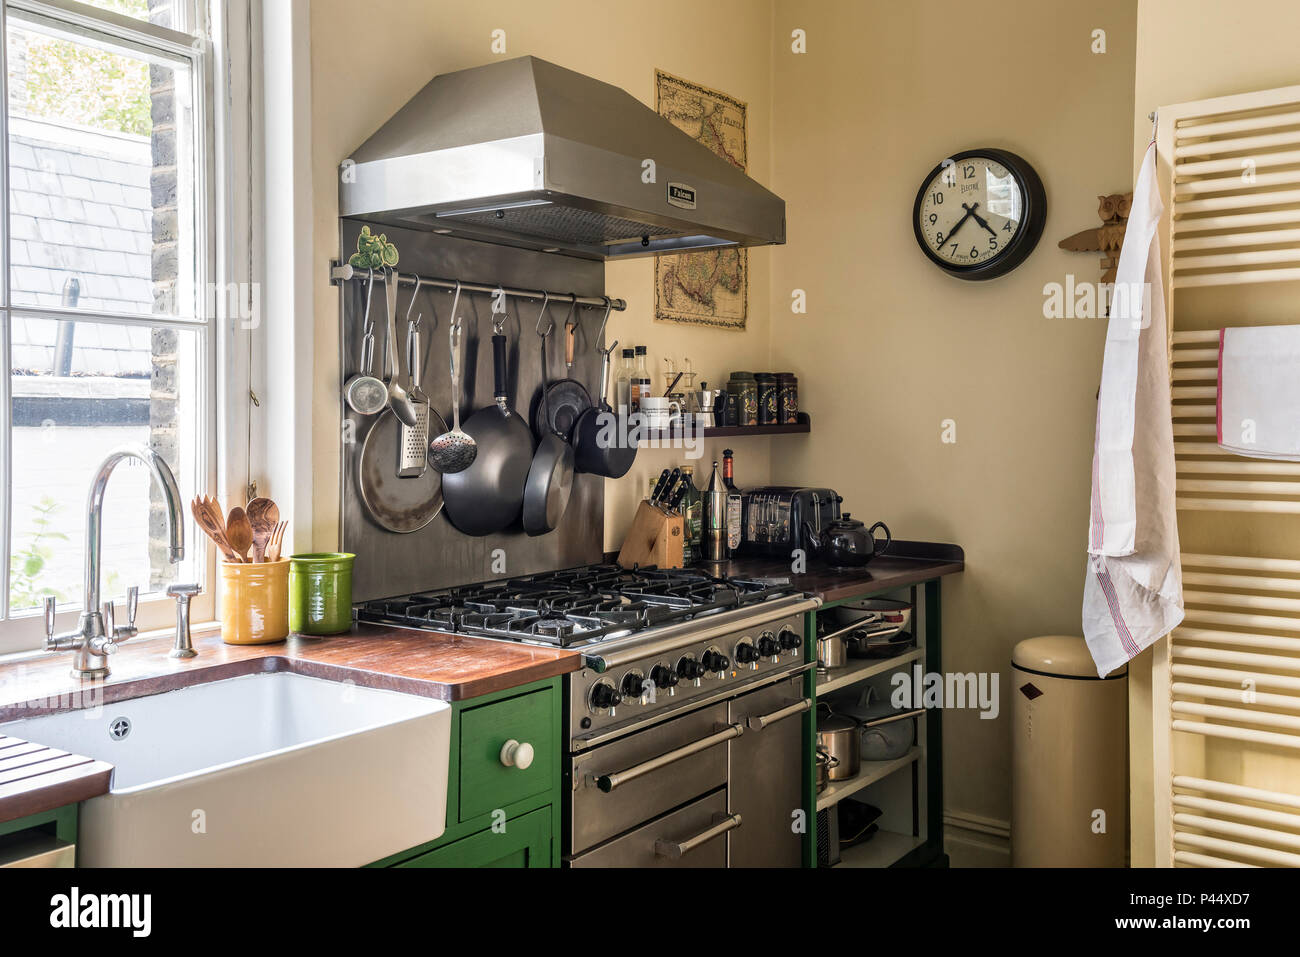 Stainless steel extractor and clock with gas oven at window. - Stock Image